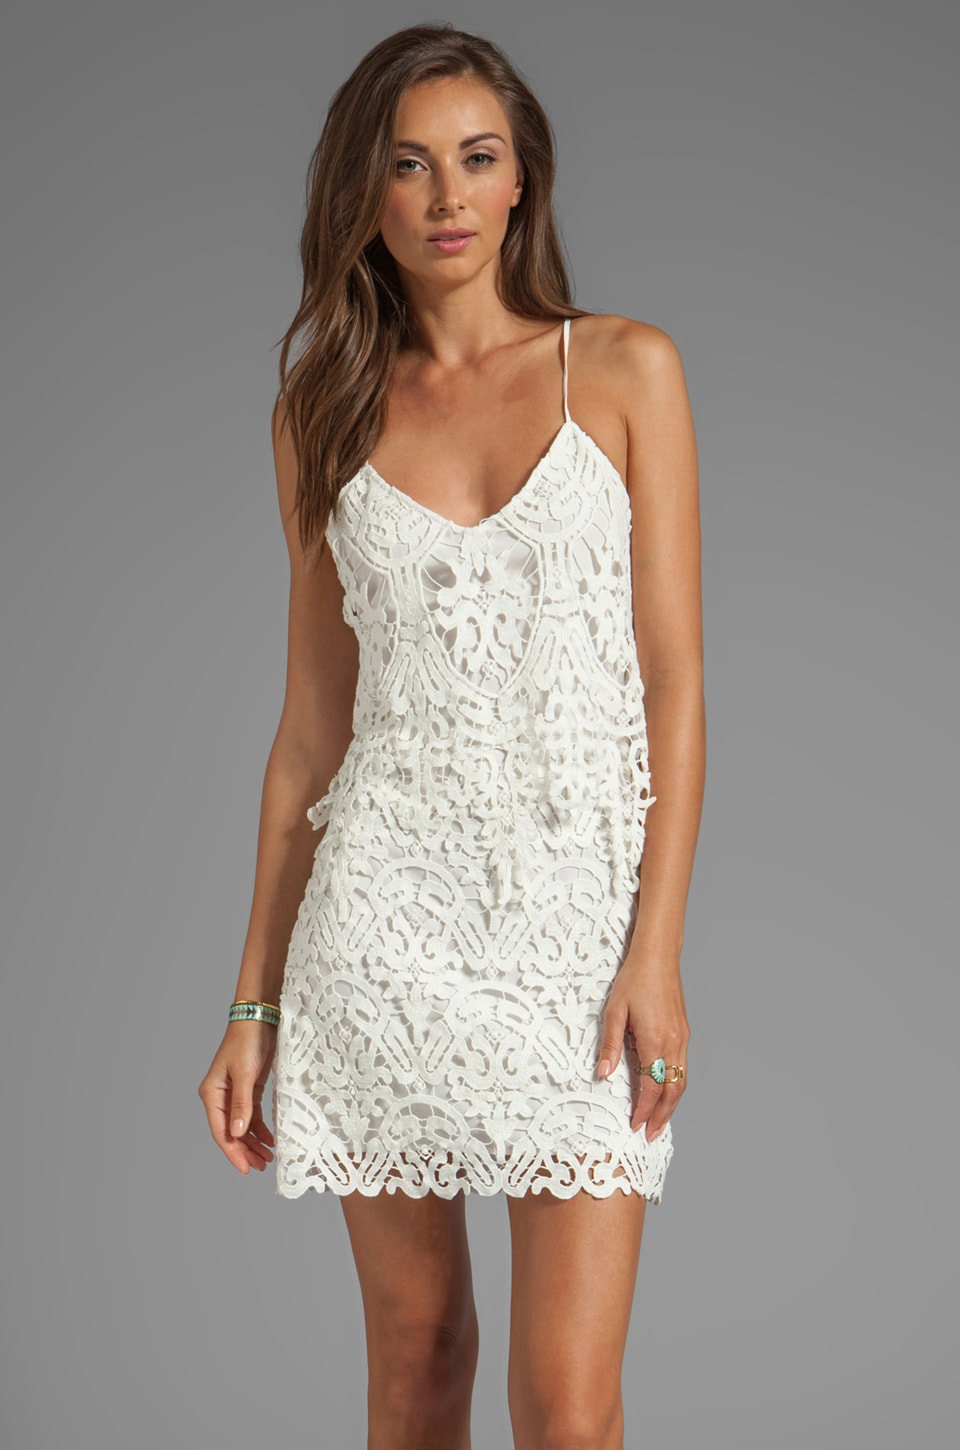 Dolce Vita Jordinna Charleston Lace Spaghetti Strap Dress in Snow